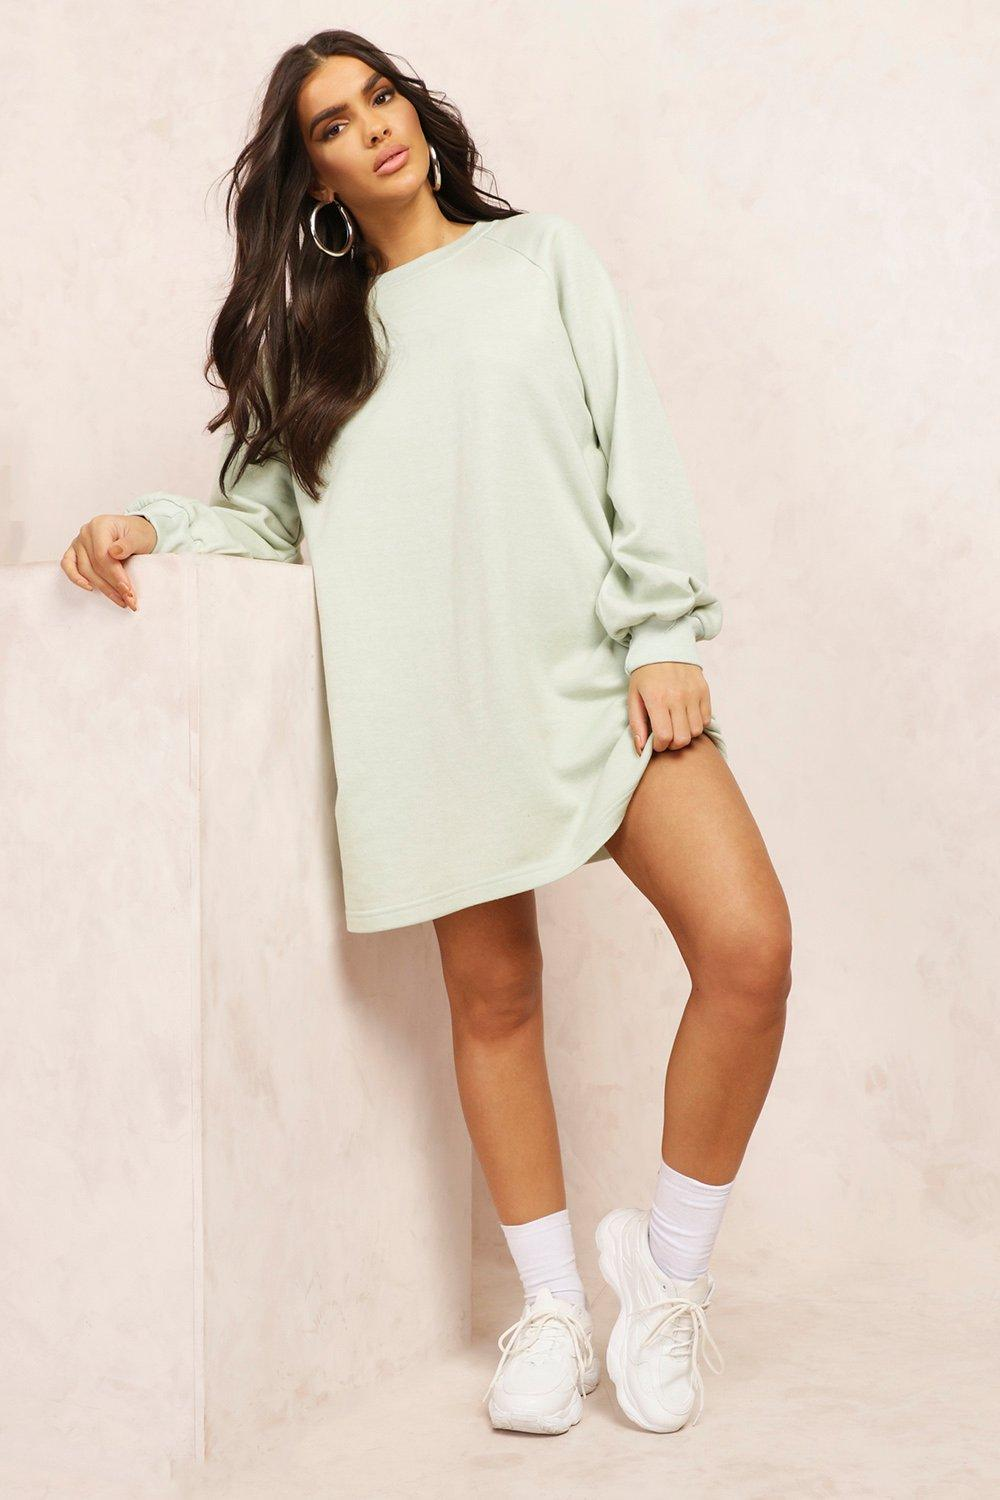 boohoo Womens Mix & Match Edition Oversized Sweat Dress - Green - M, Green